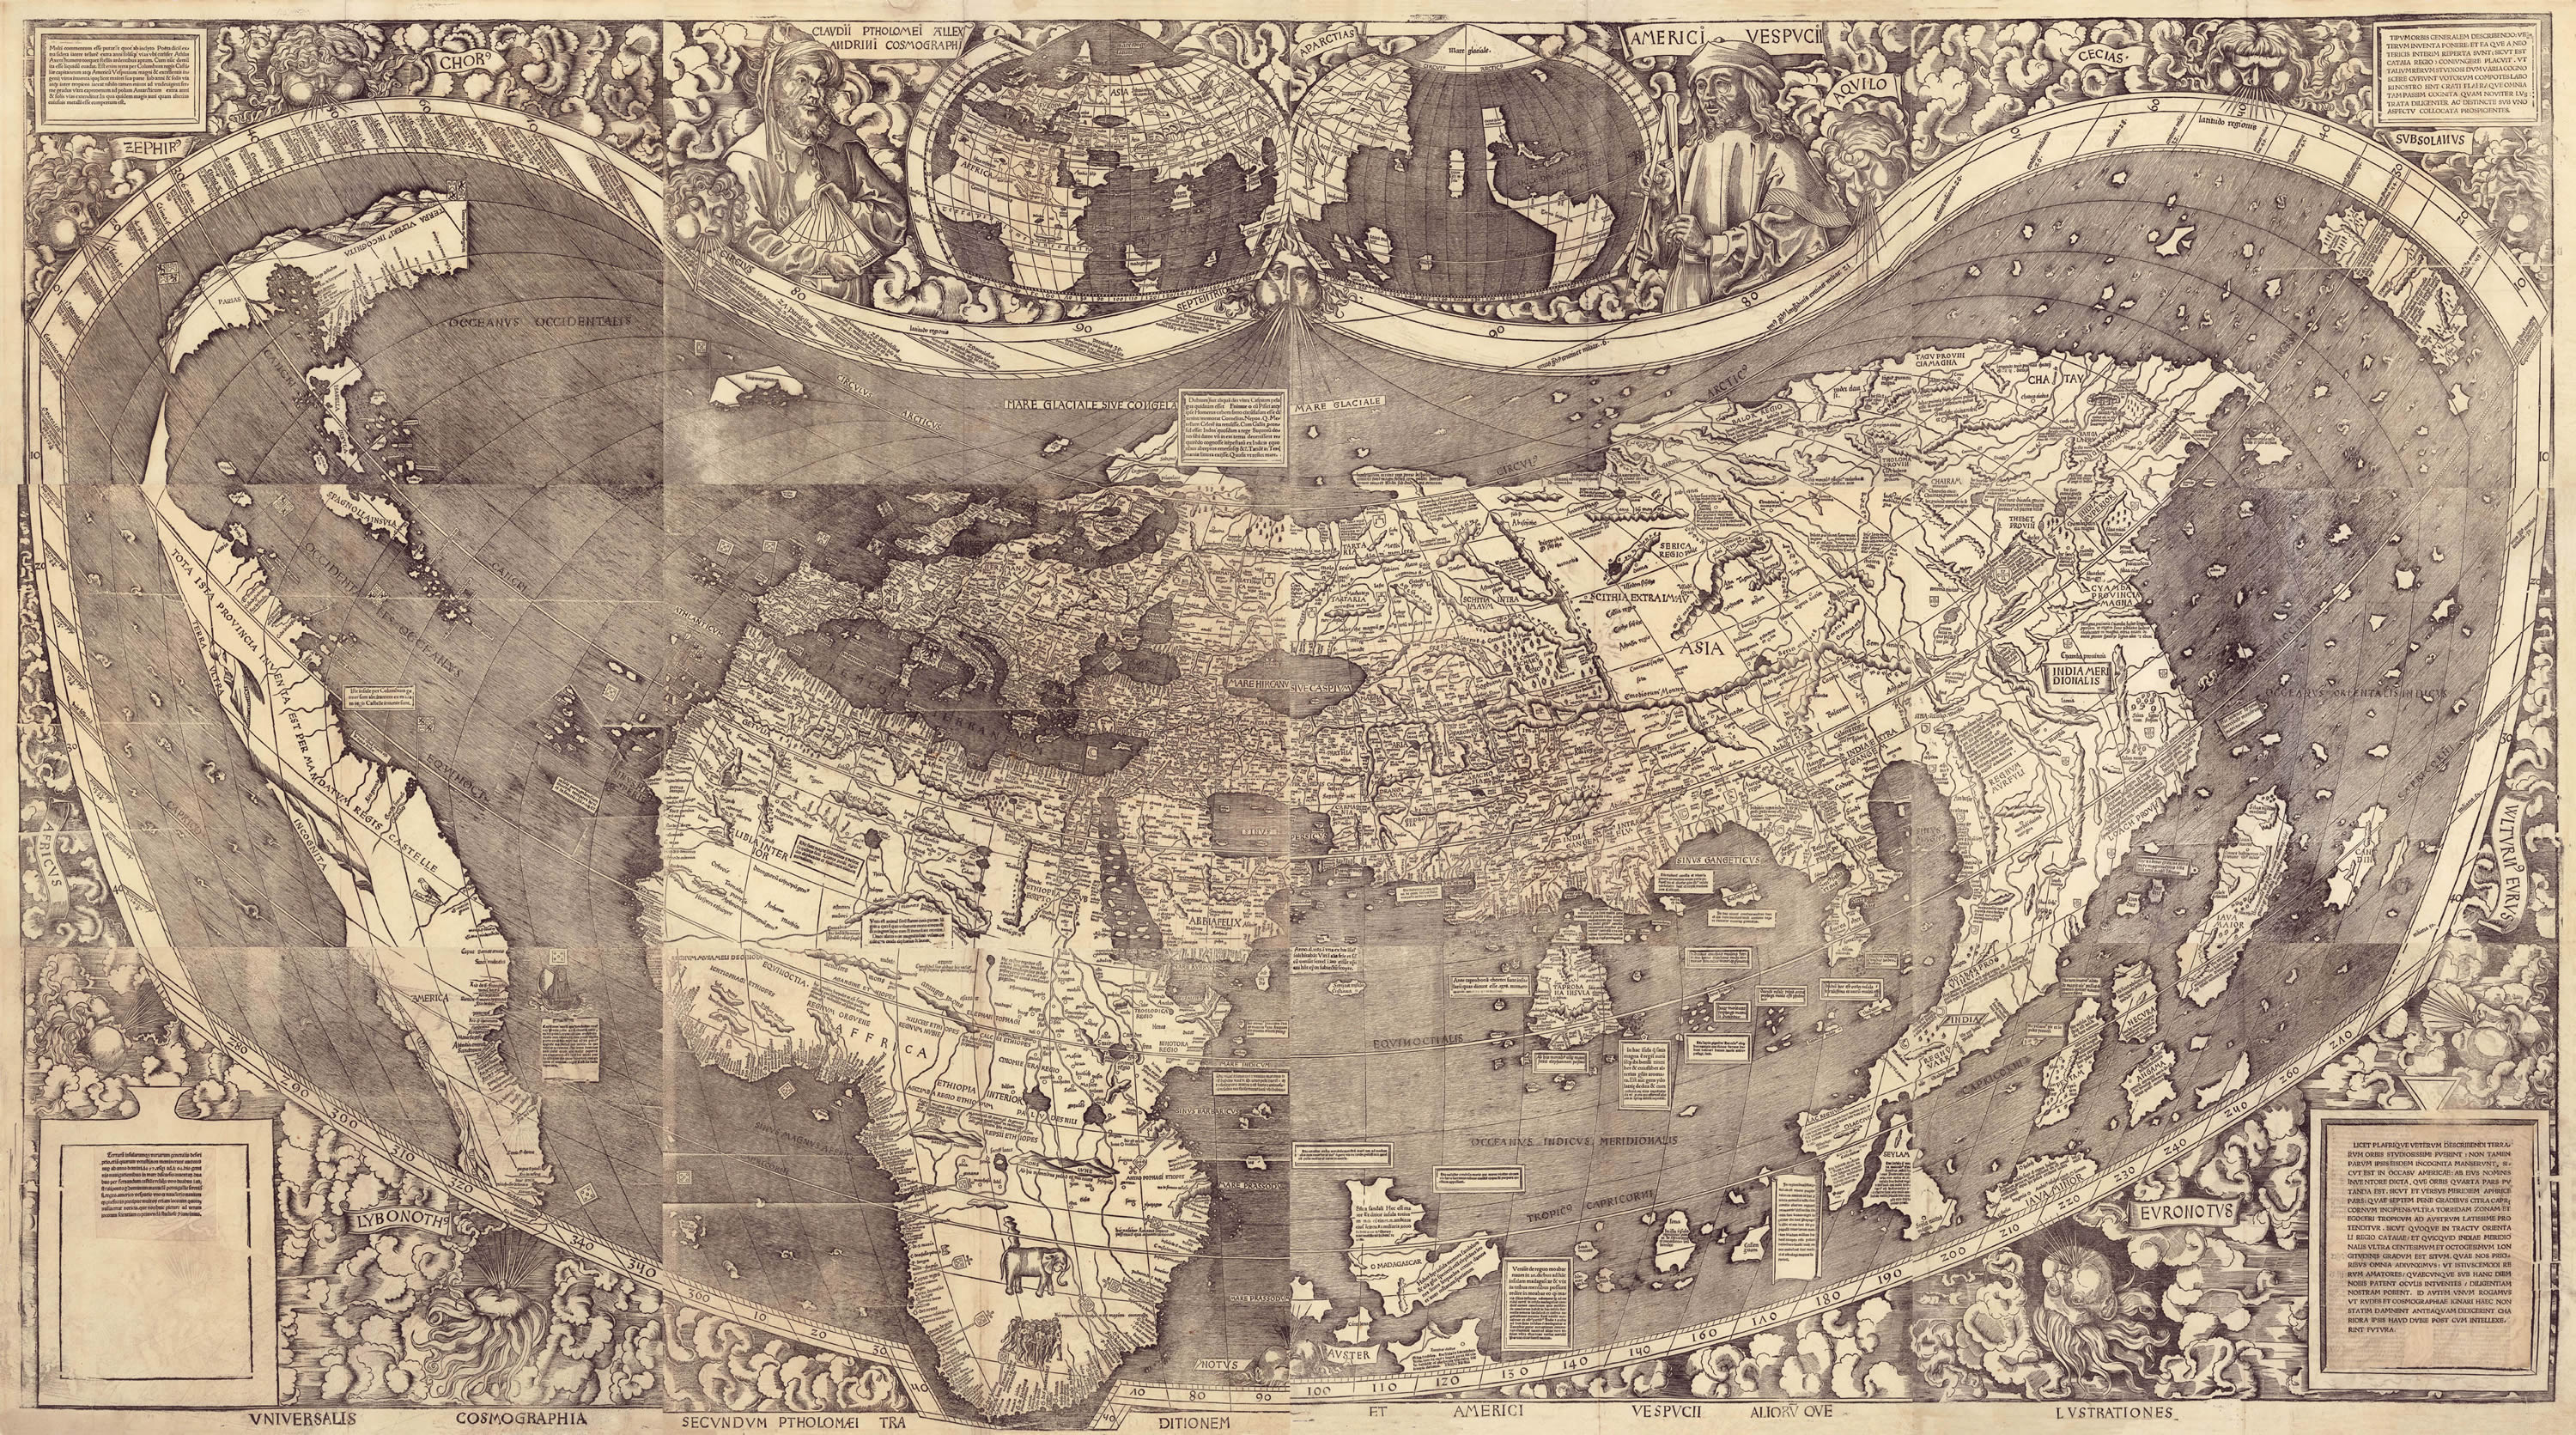 8 remarkable early maps history lists the waldseemller world map 1507 credit heritage images getty images gumiabroncs Images